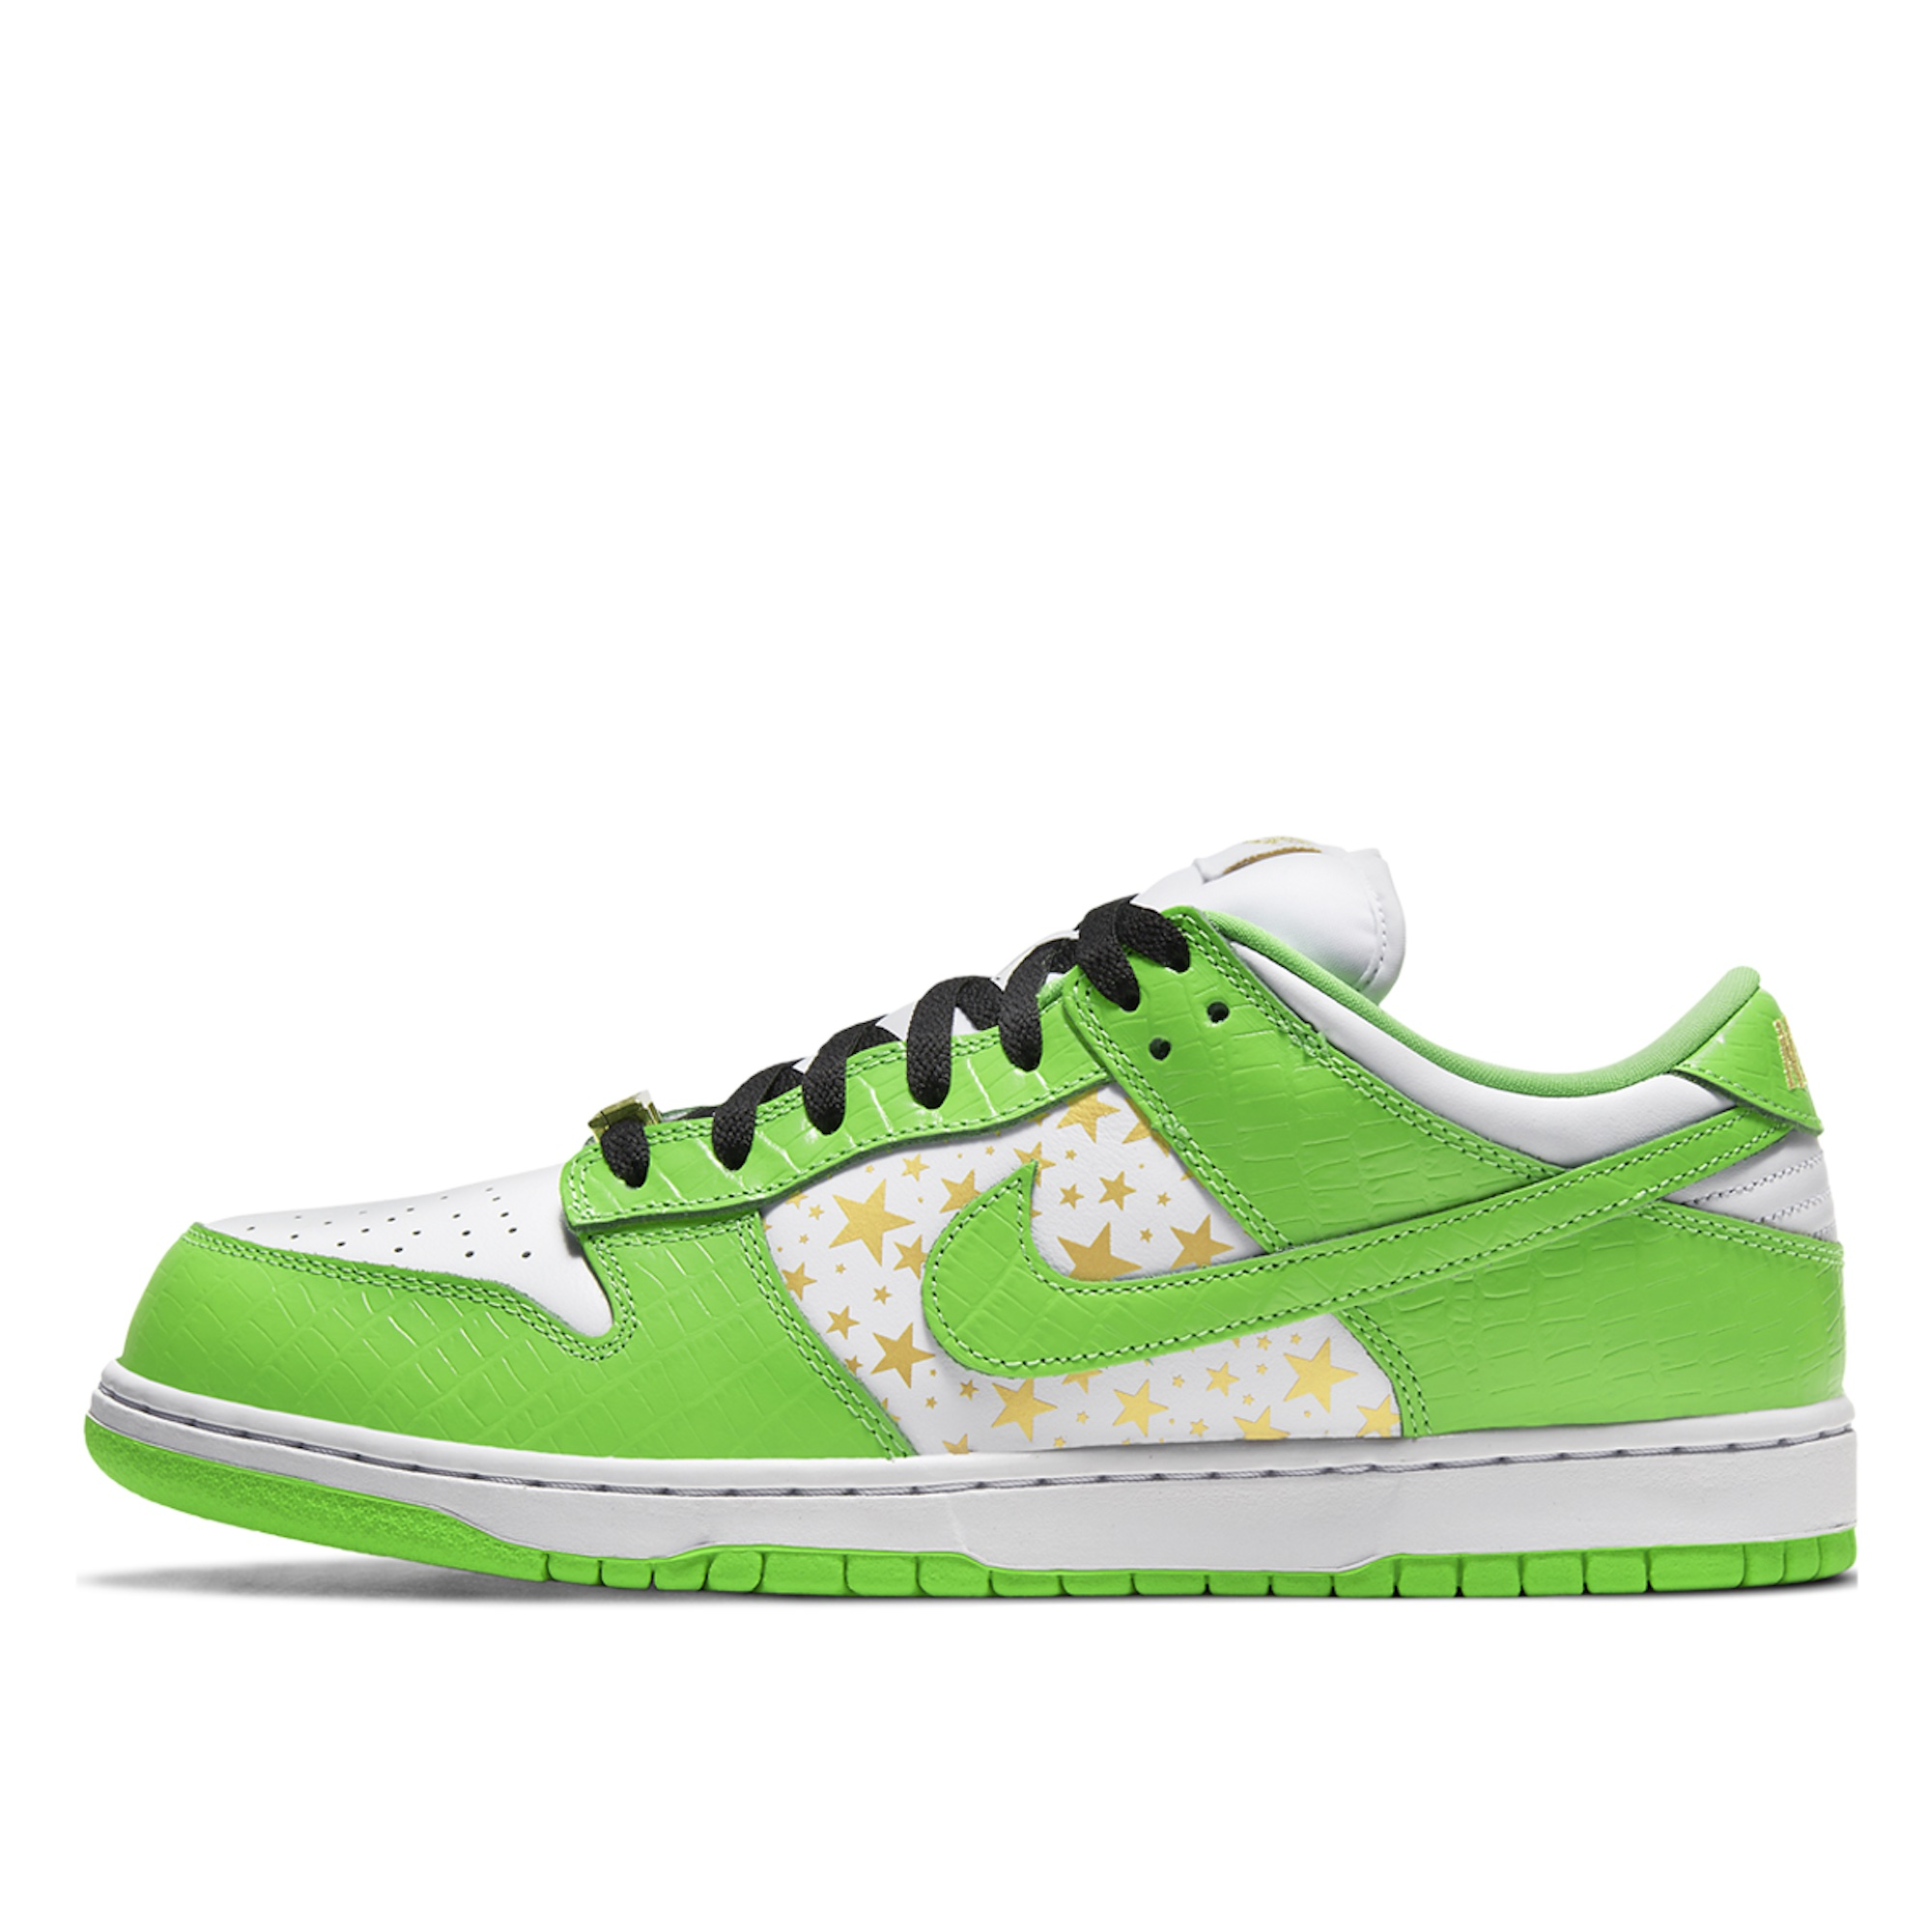 Nike SB Dunk Low Mean Green